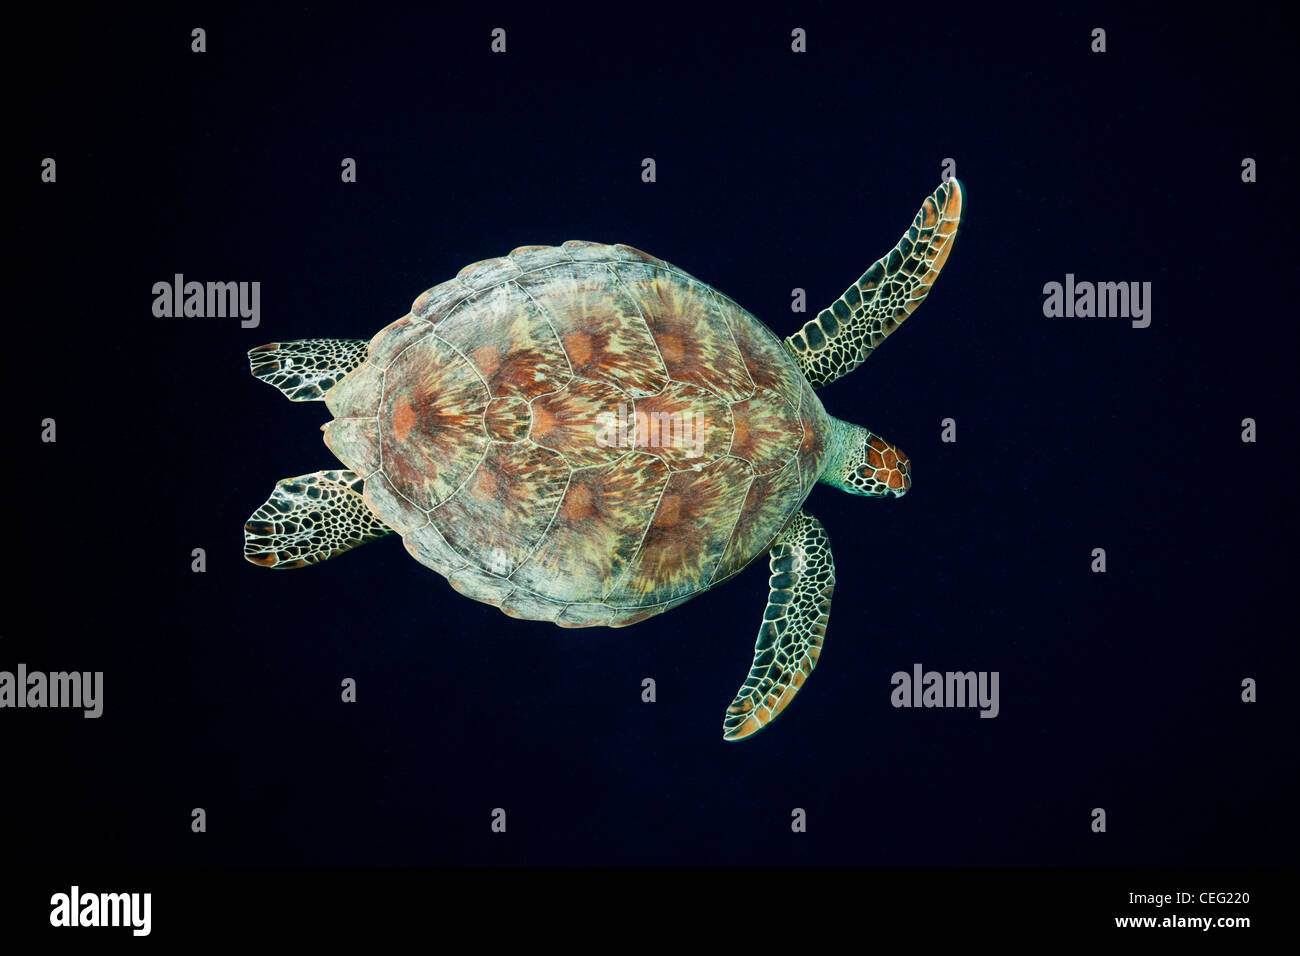 Green Sea Turtle, Chelonia mydas, Baa Atoll, Indian Ocean, Maldives - Stock Image